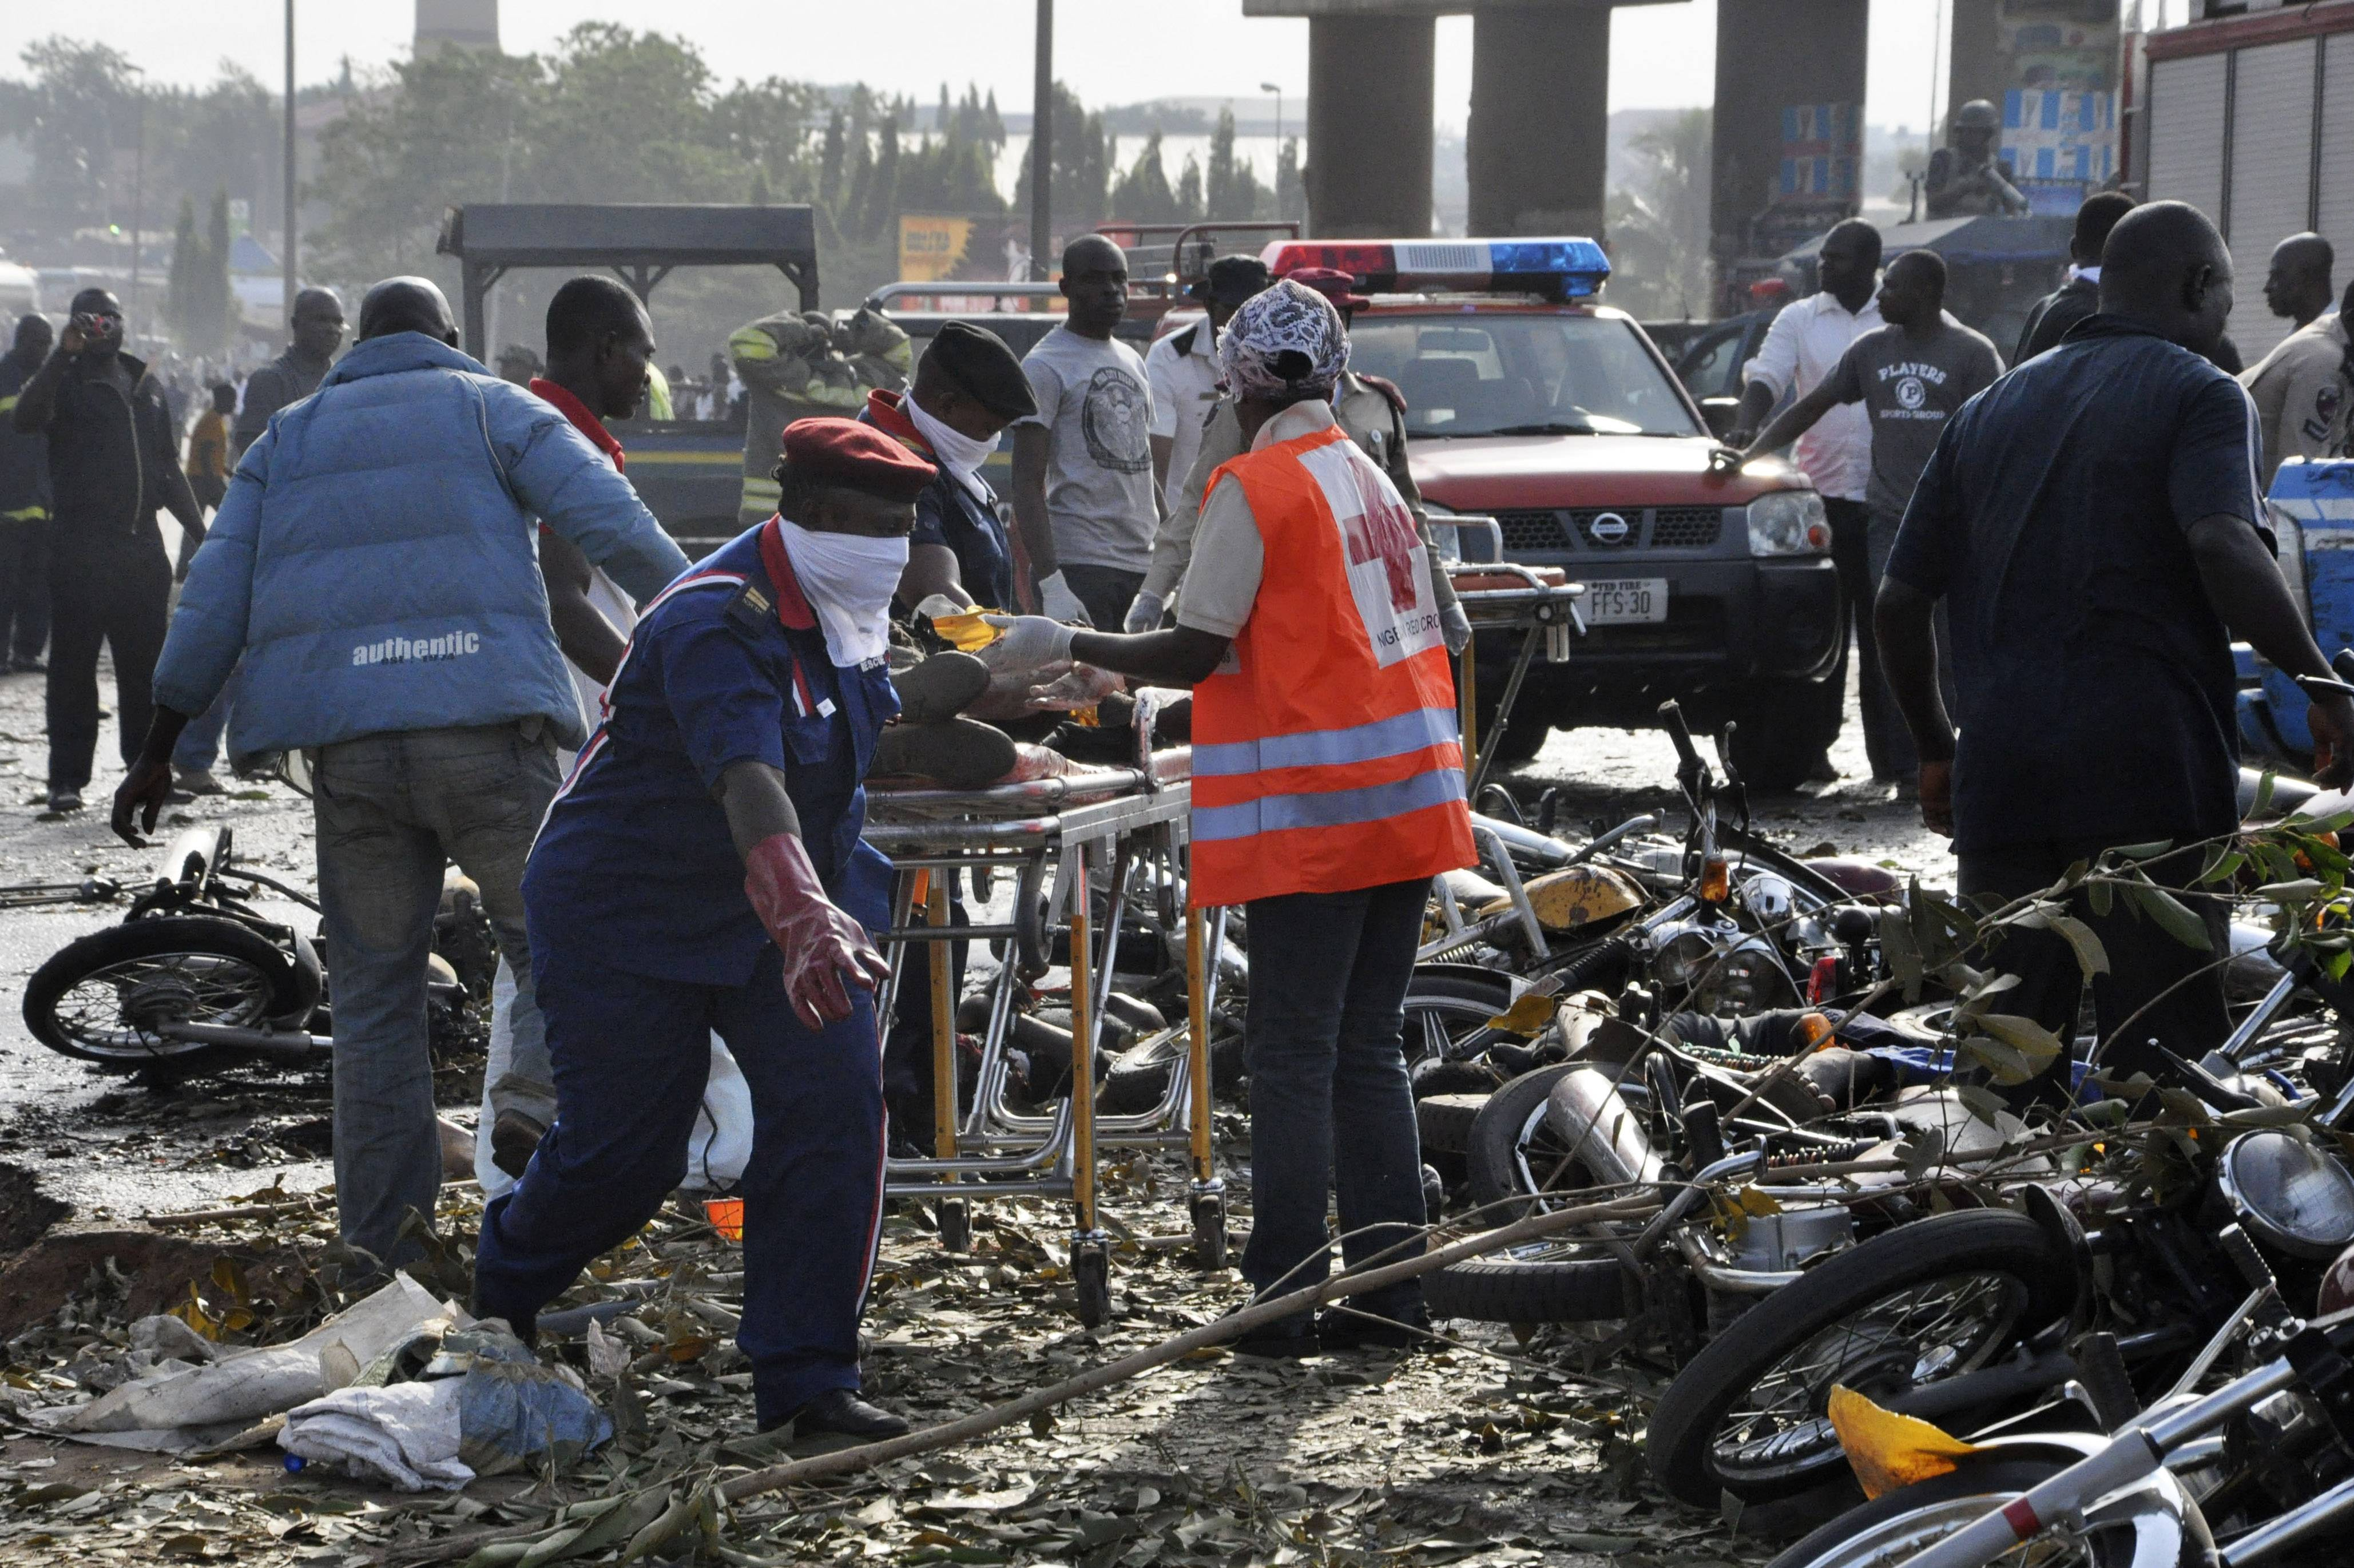 Rescue workers work Monday to recover victims at the worst-ever bomb attack on Nigeria's capital of Abuja. The attack killed at least 72 people.